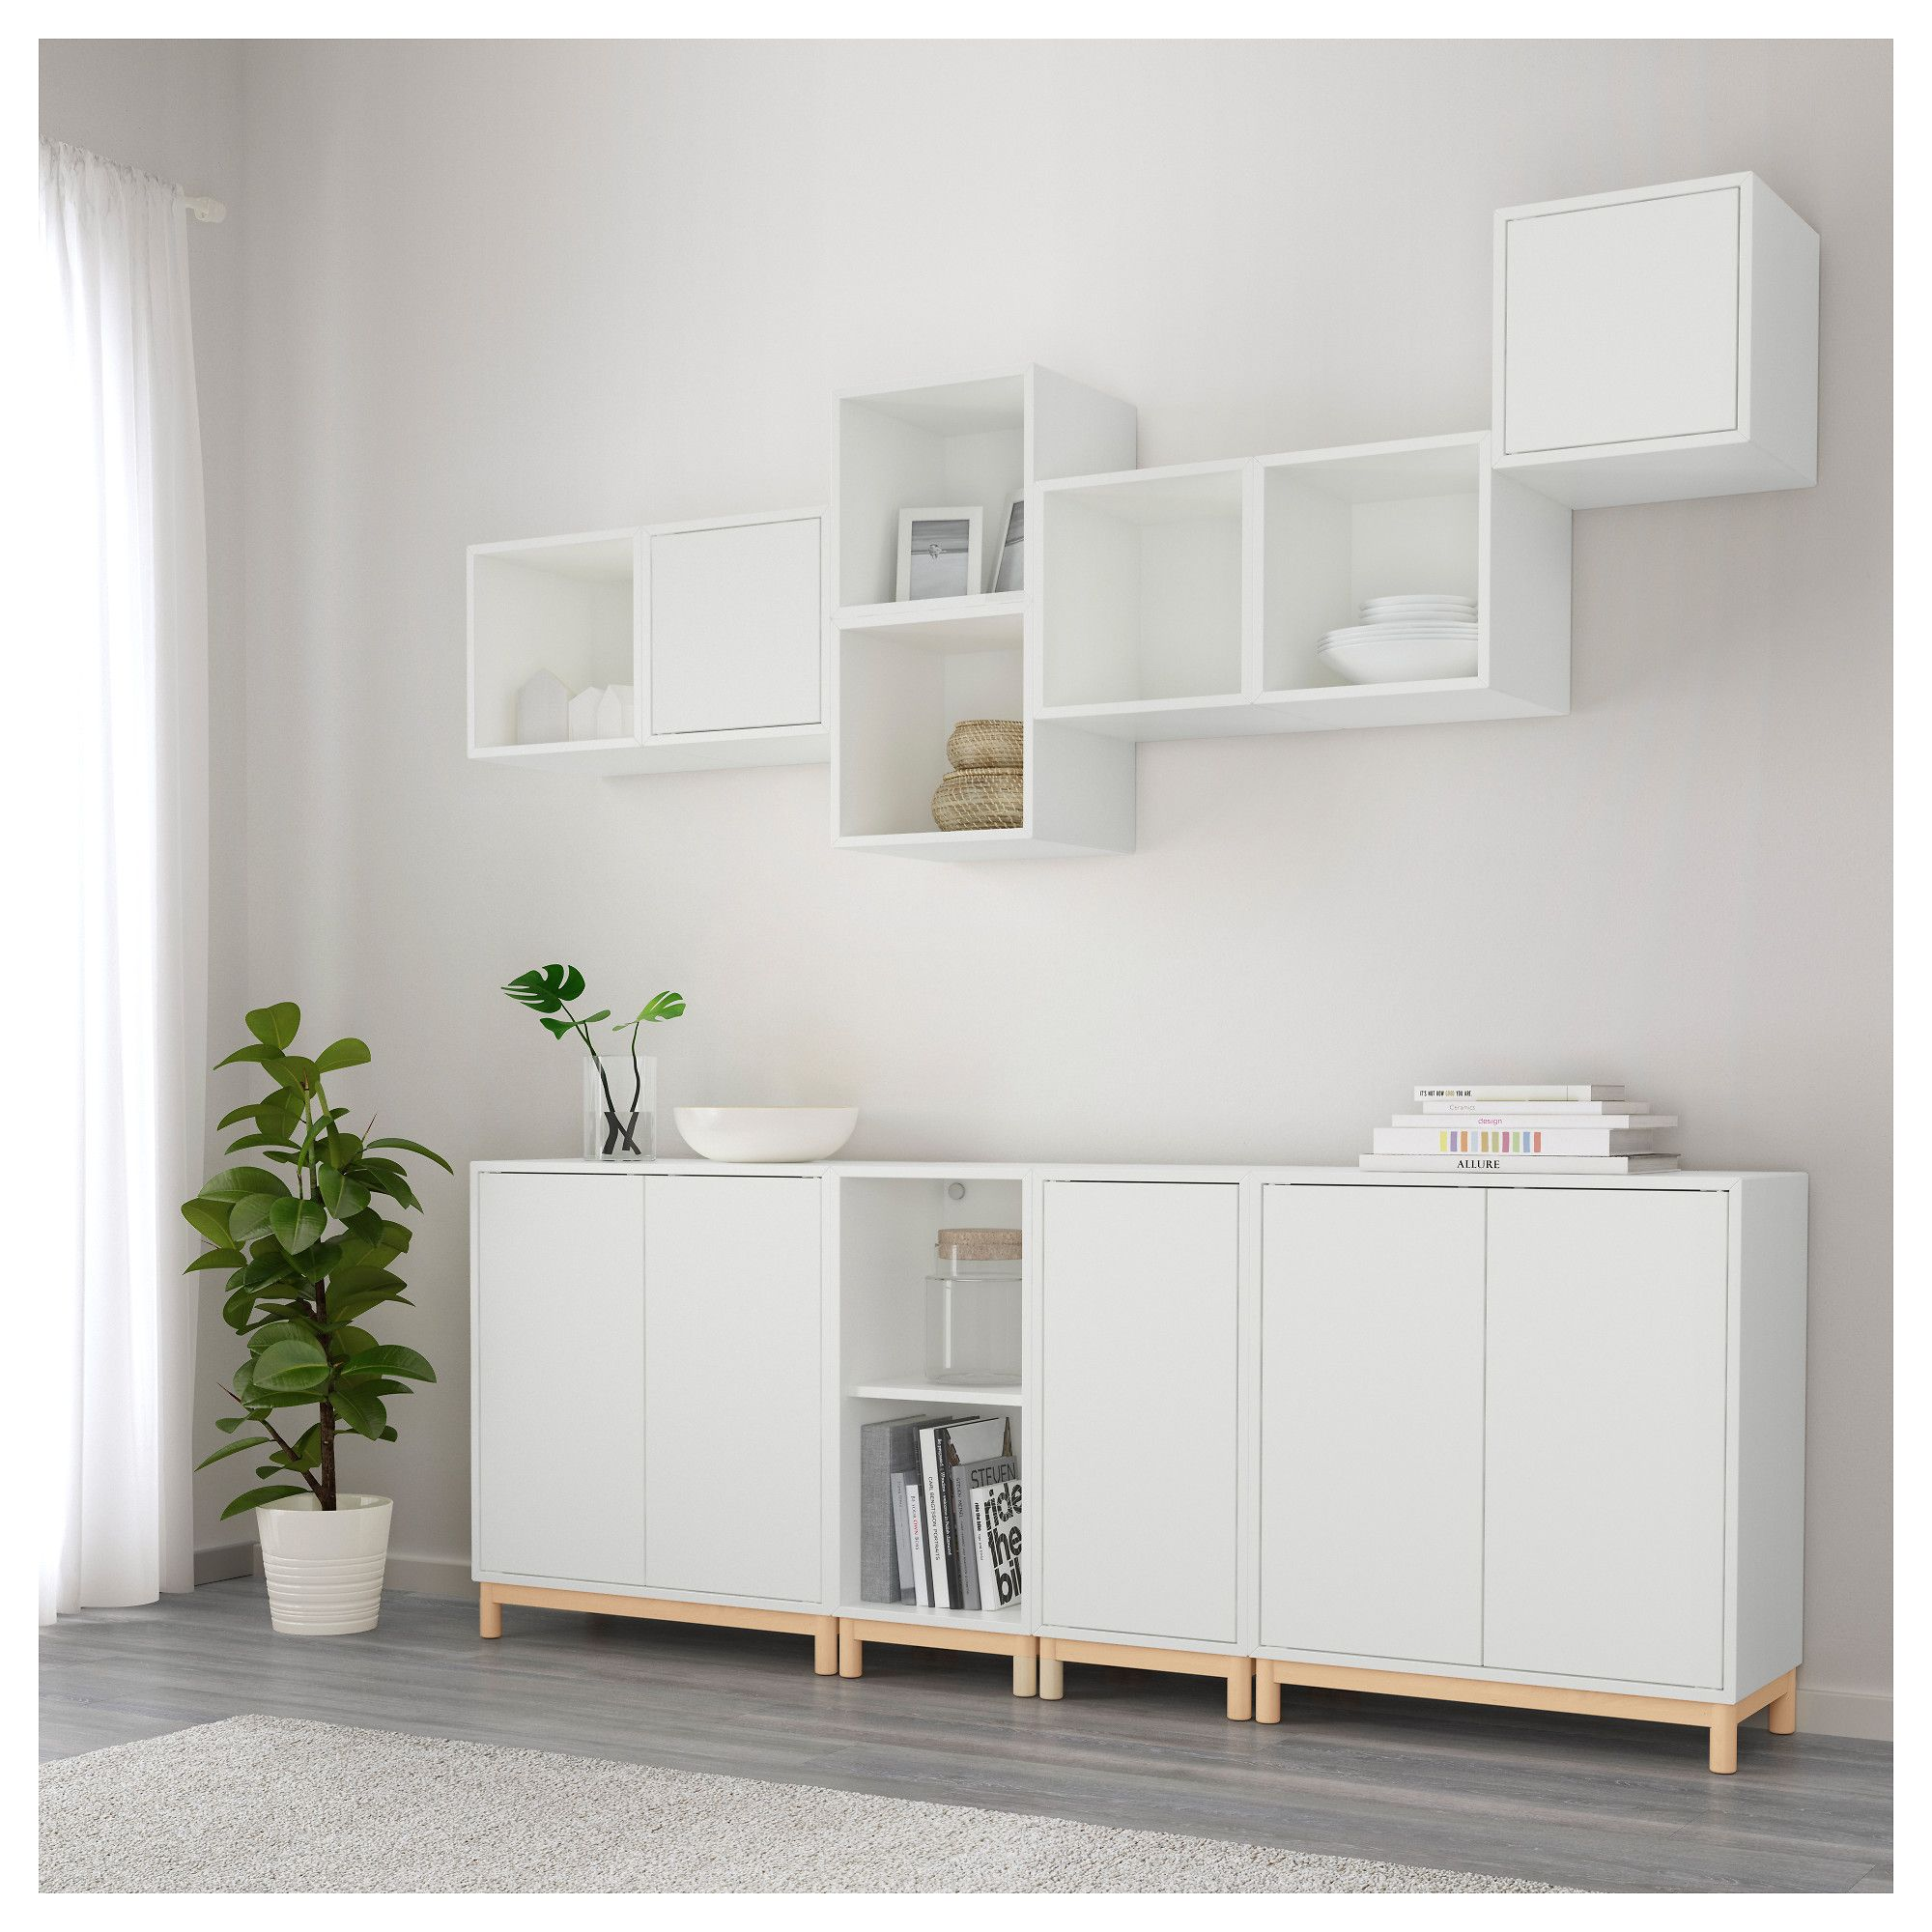 ikea eket storage combination with legs white products pinterest wohnzimmer ikea ideen. Black Bedroom Furniture Sets. Home Design Ideas